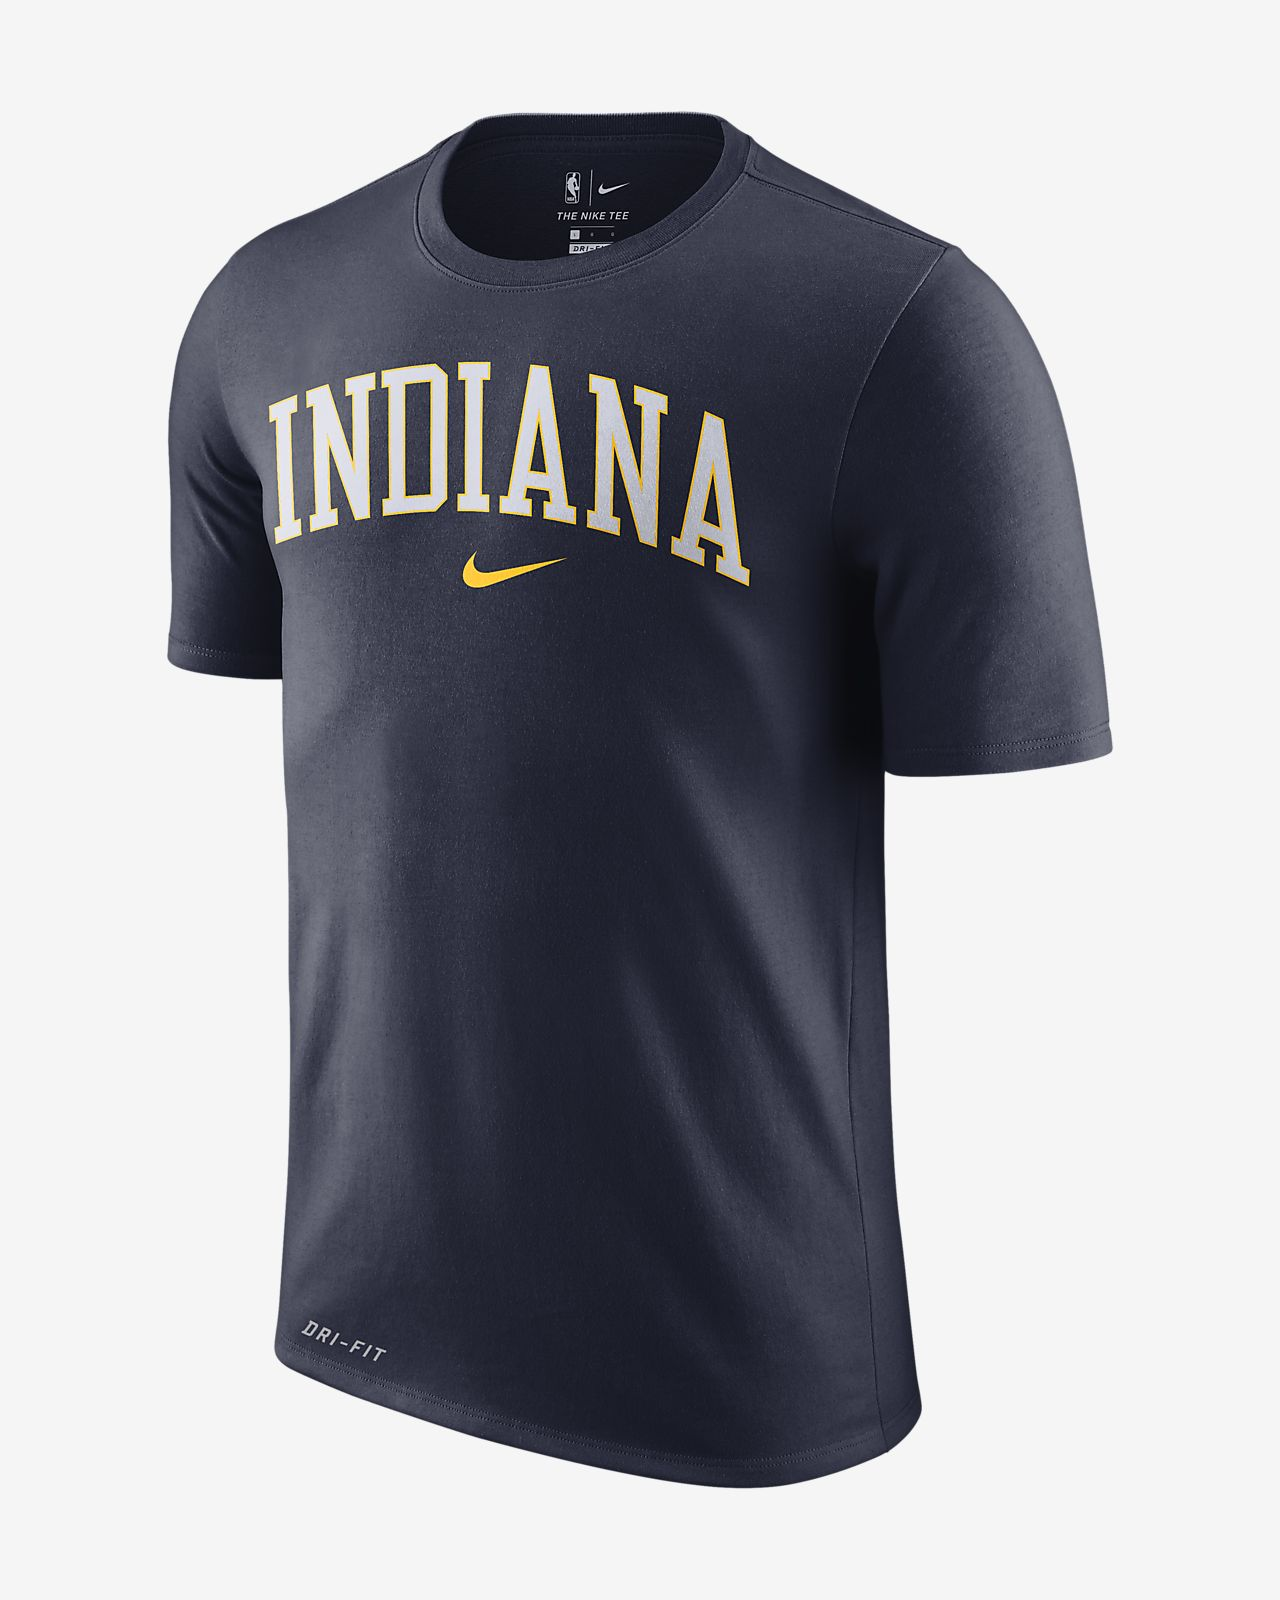 new style 1eb17 16f83 Indiana Pacers Nike Dri-FIT Men's NBA T-Shirt